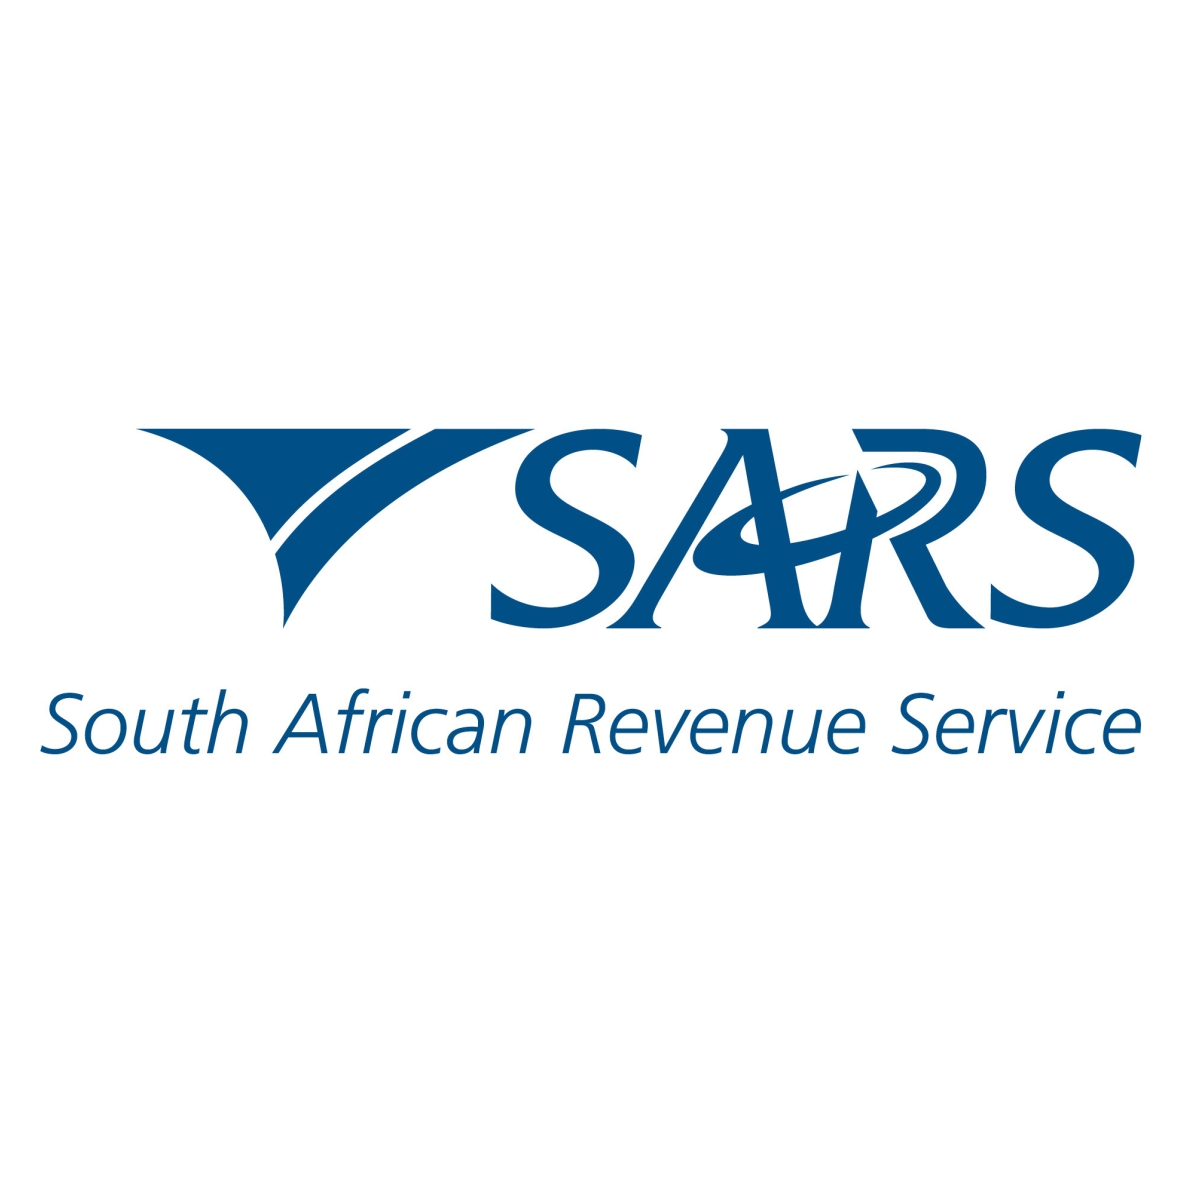 https://fidentis.co.za/wp-content/uploads/2021/03/sars-logo.jpg